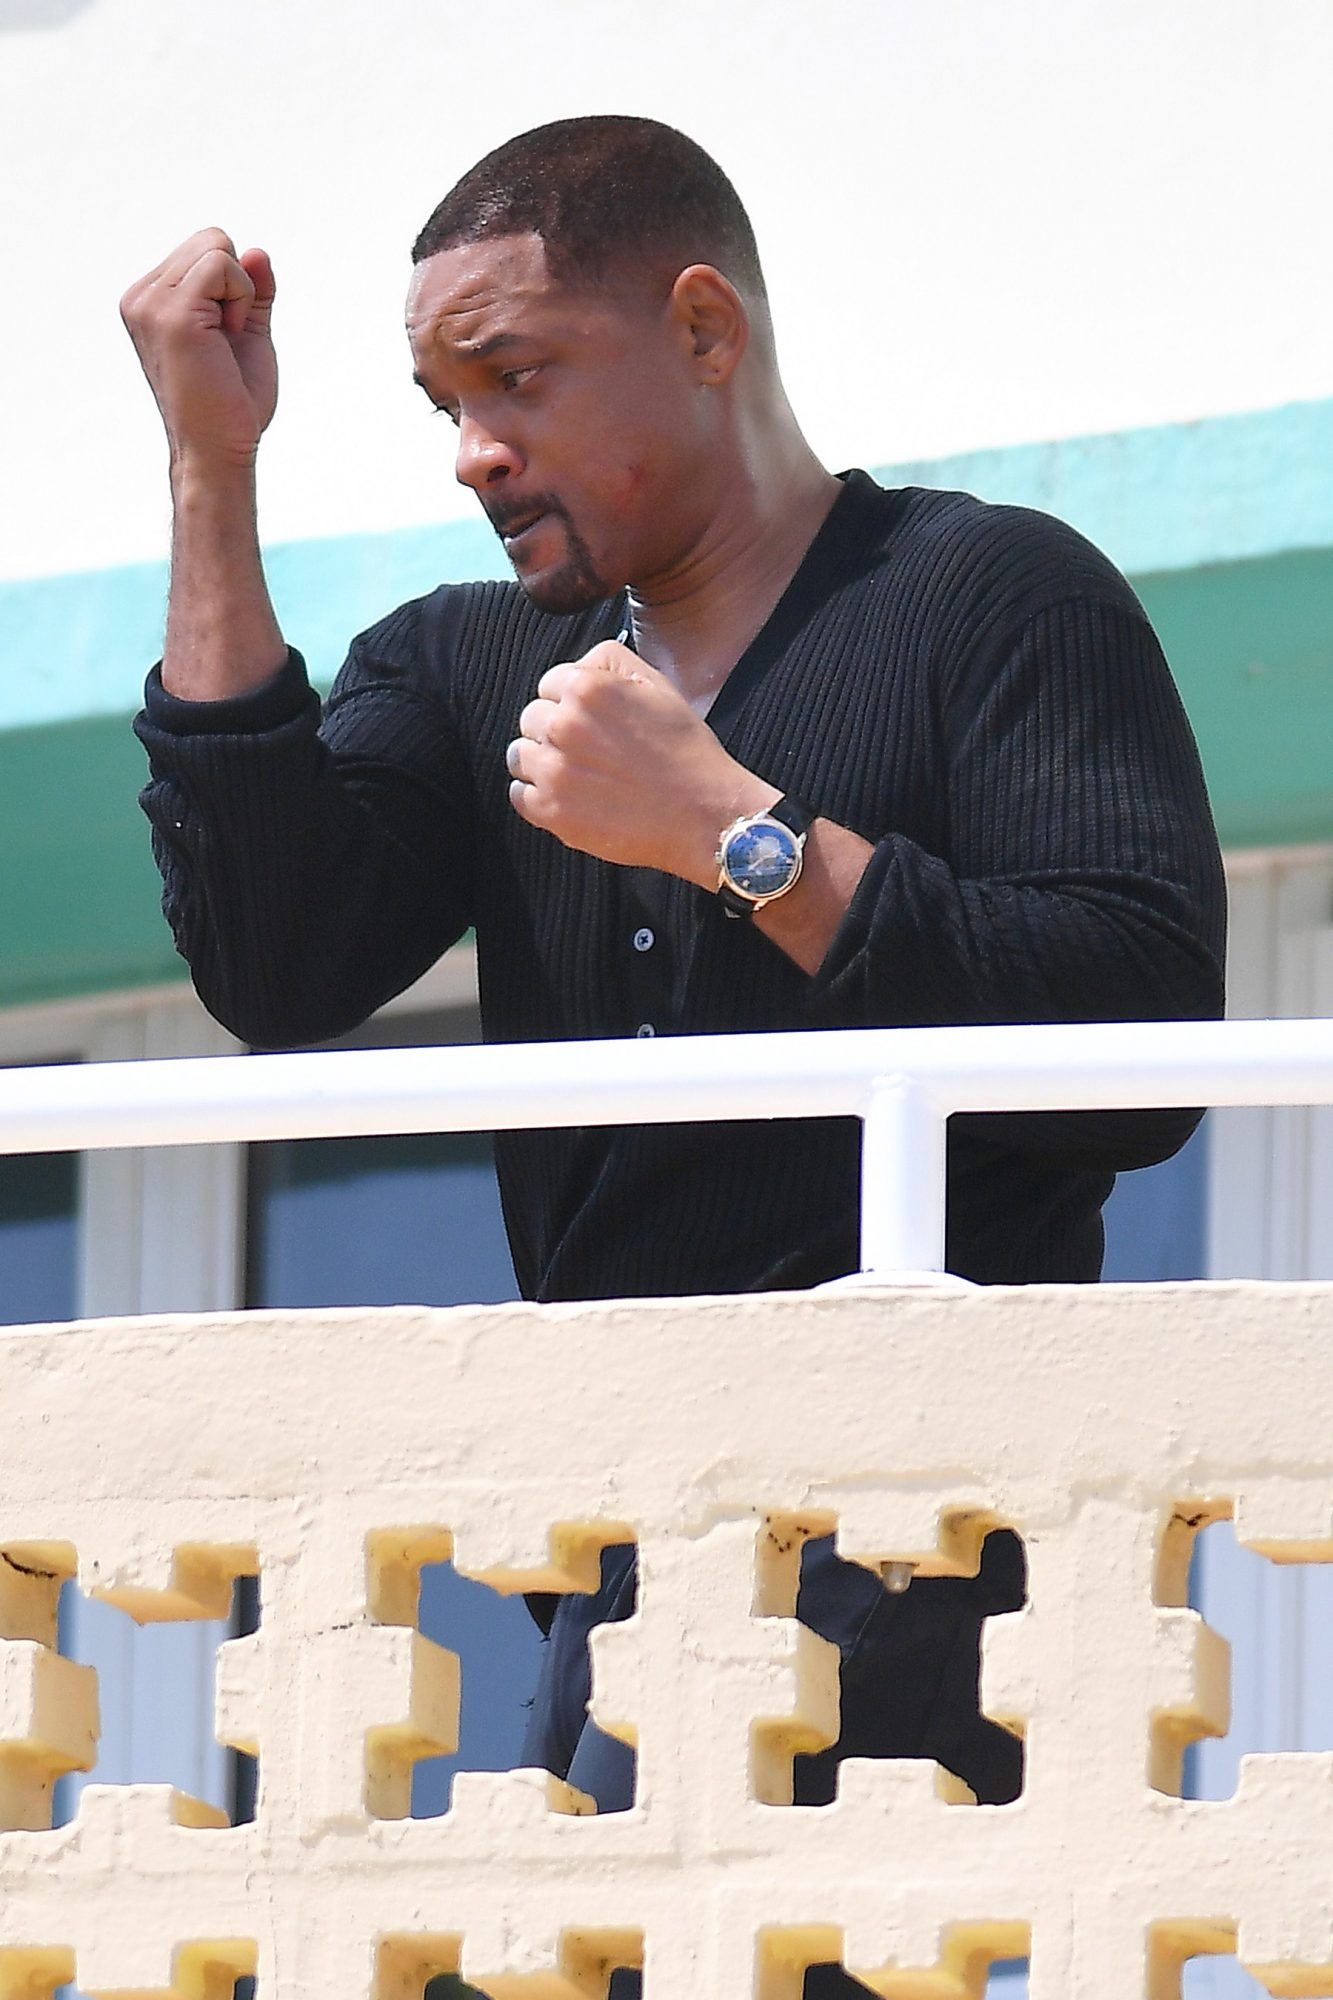 Will Smith Practices Shadow Boxing For A Fighting Scene On Set Of Bad Boys 3 In Miami Beach, Florida